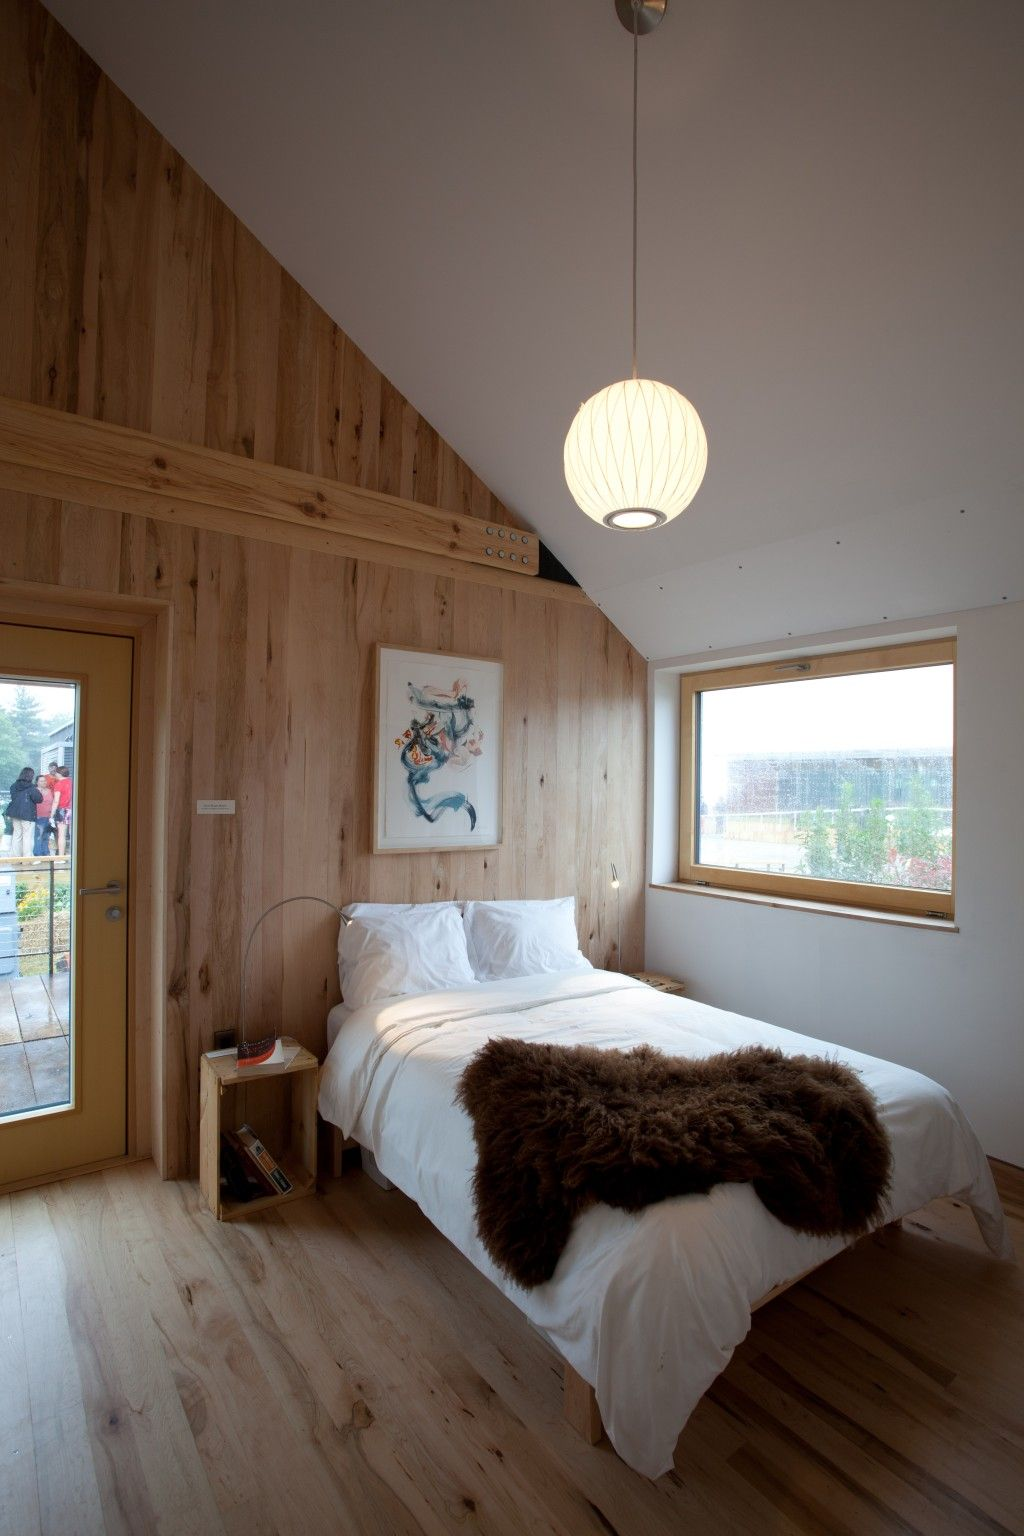 Light Maple Bedroom Furniture Contemporary Wood Wall Paneling Inspiration For Bedroom Interior